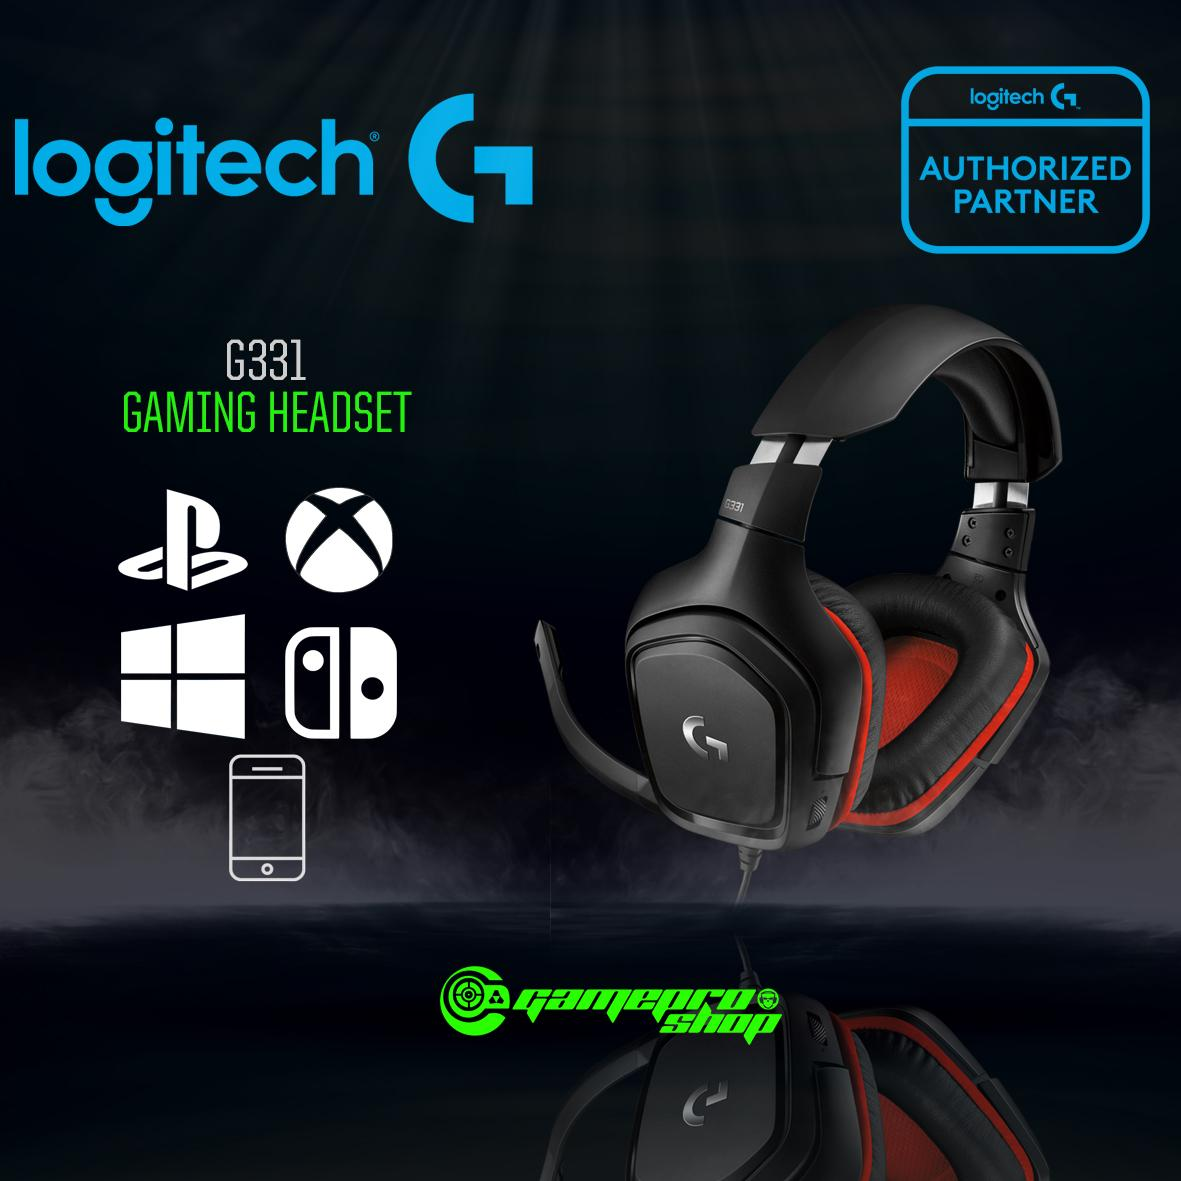 fa18bc6f562 Logitech H600 Fold and Go Wireless Headset with 6 Hour Battery LIfe ...